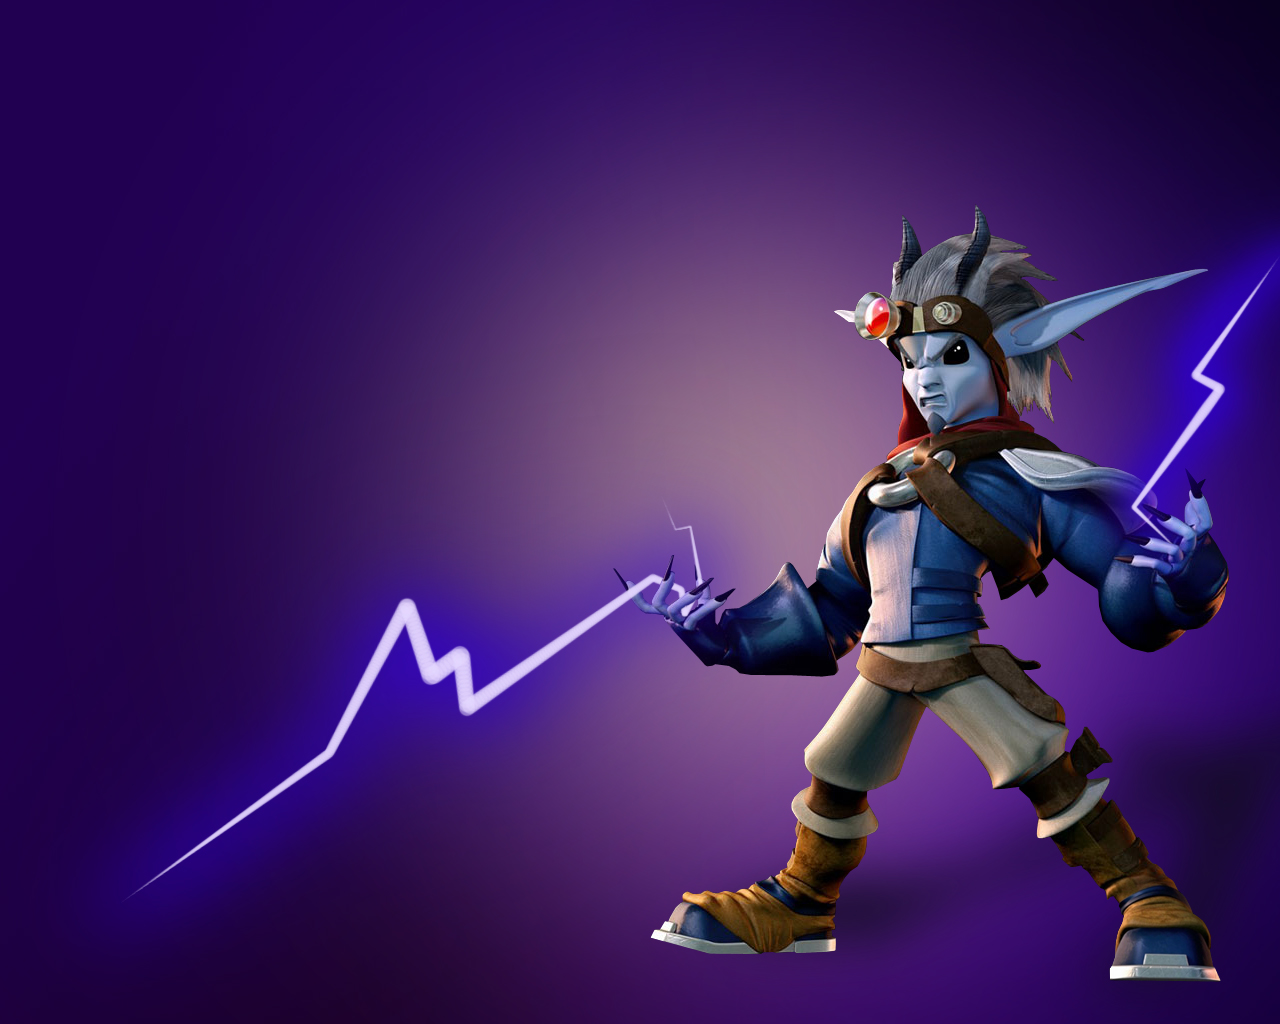 jak and daxter background